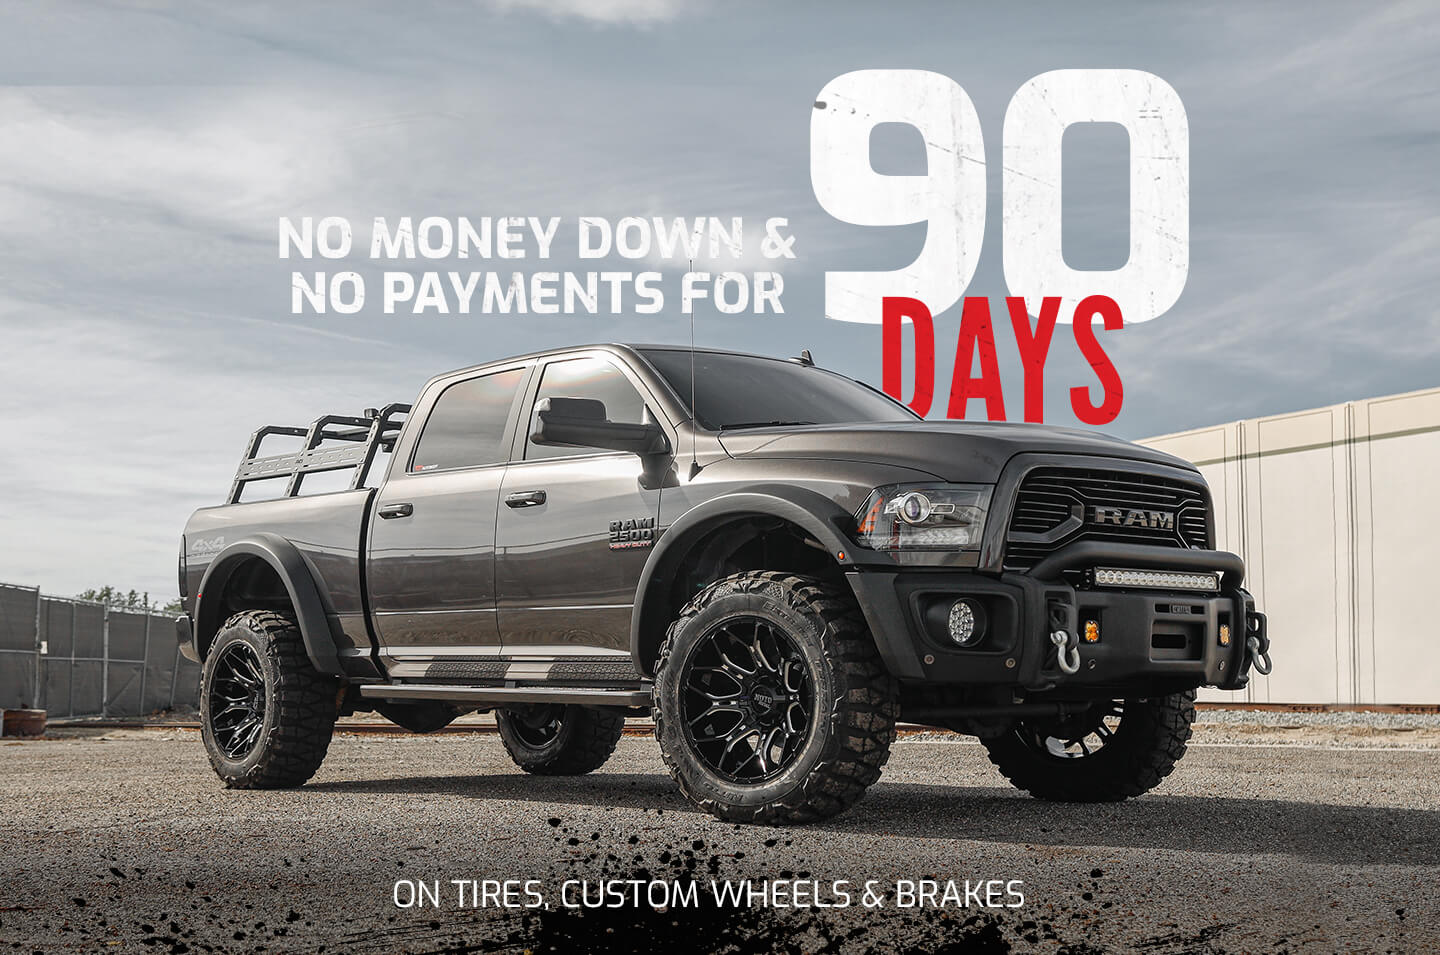 No Money Down & No Payments for 90 Days